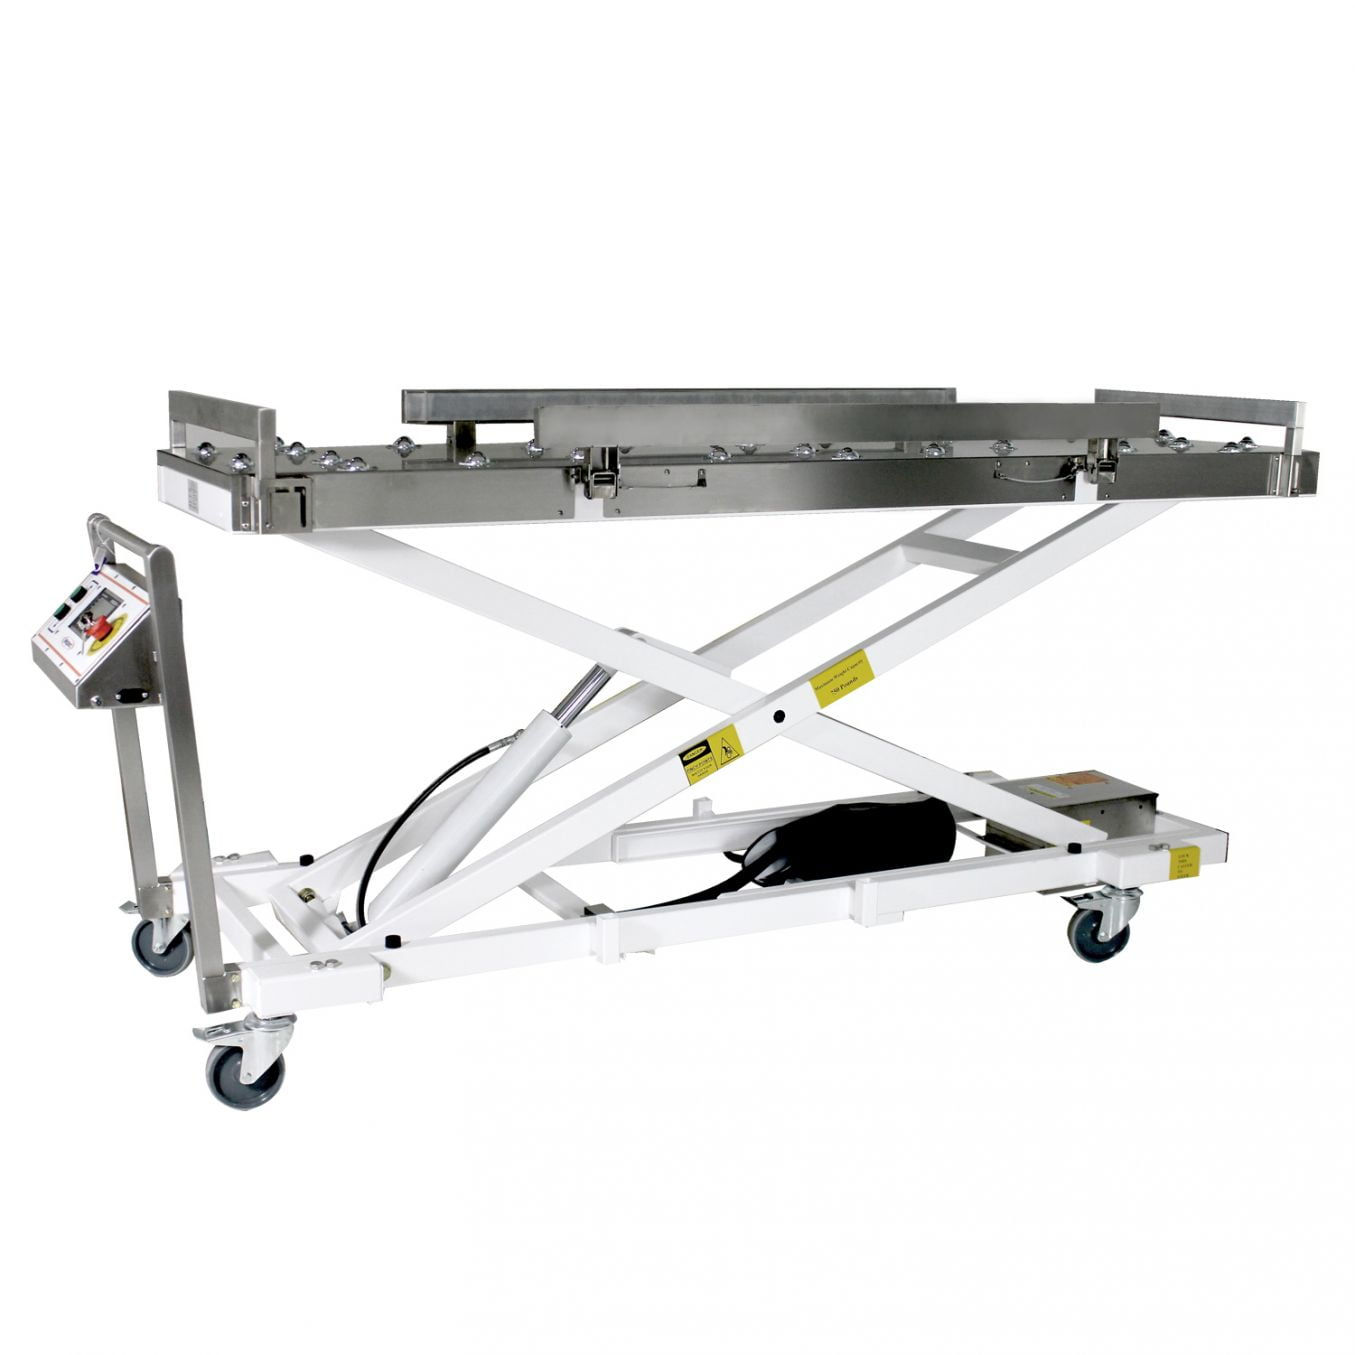 Mopec Creates Cadaver Lifts With Adaptable And Clear Design That Exceeds Industry Standard